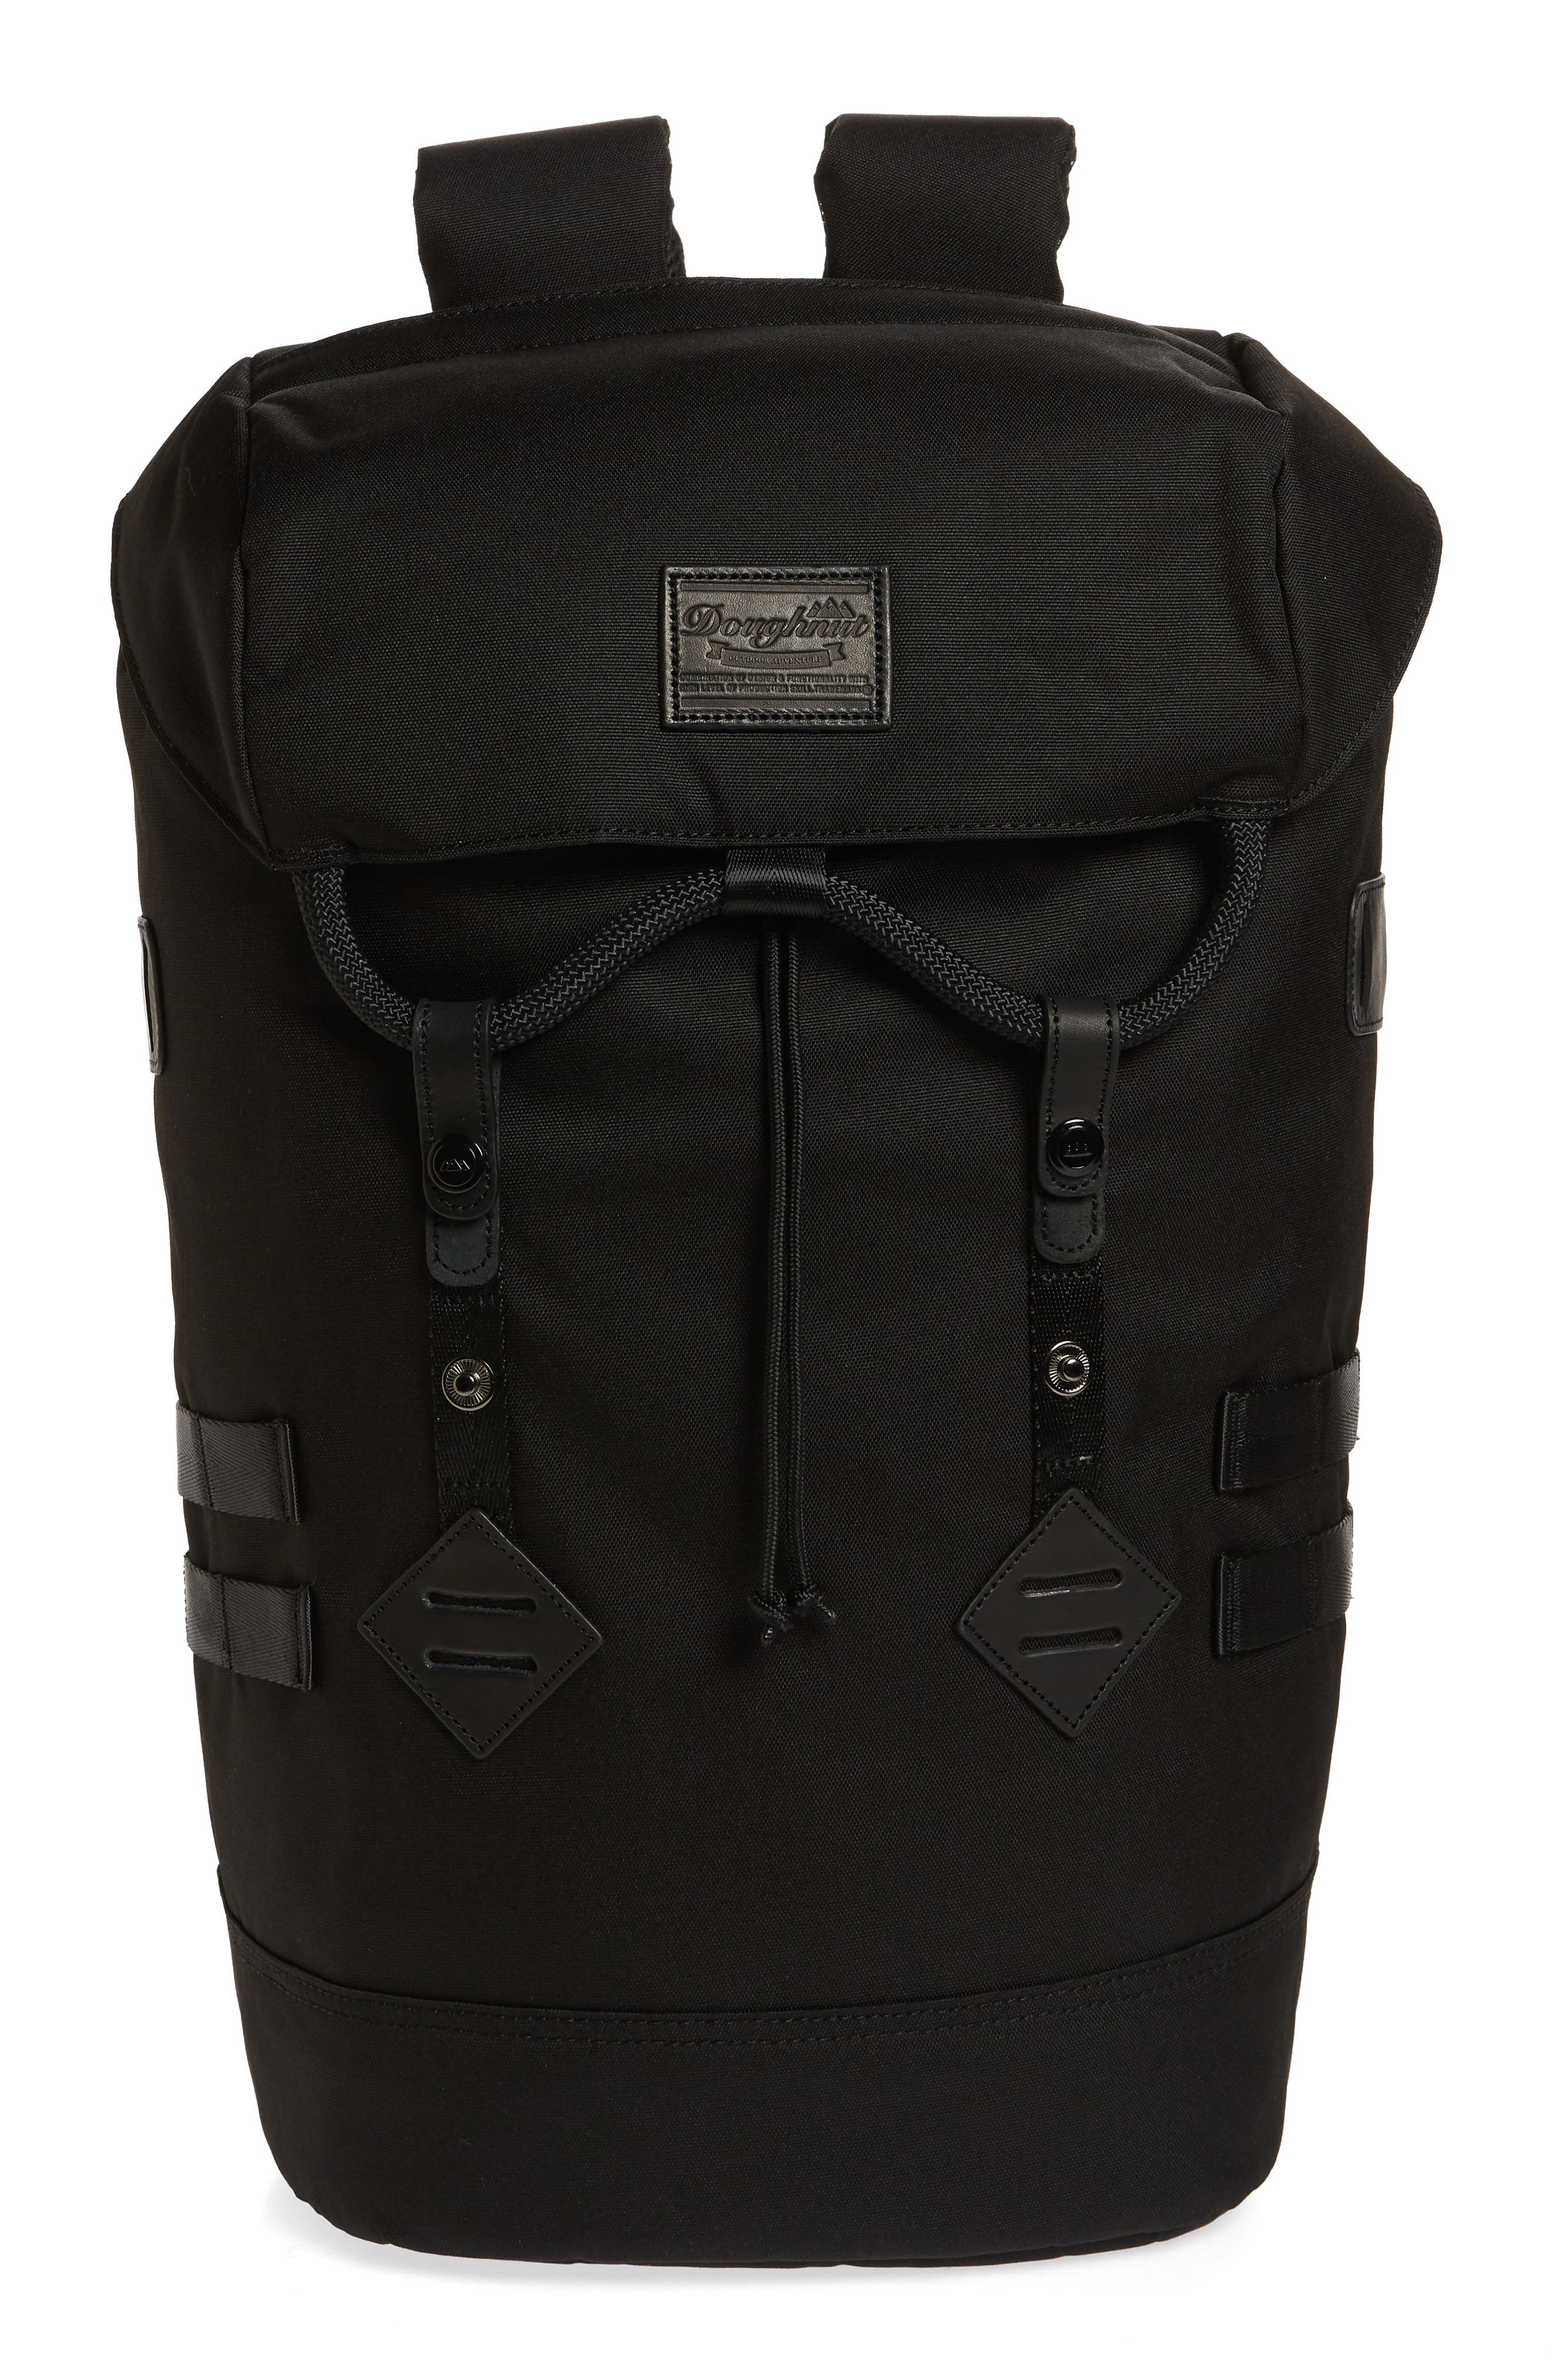 Colorado Black Series Water Repellent Backpack,                         Main,                         color, Black